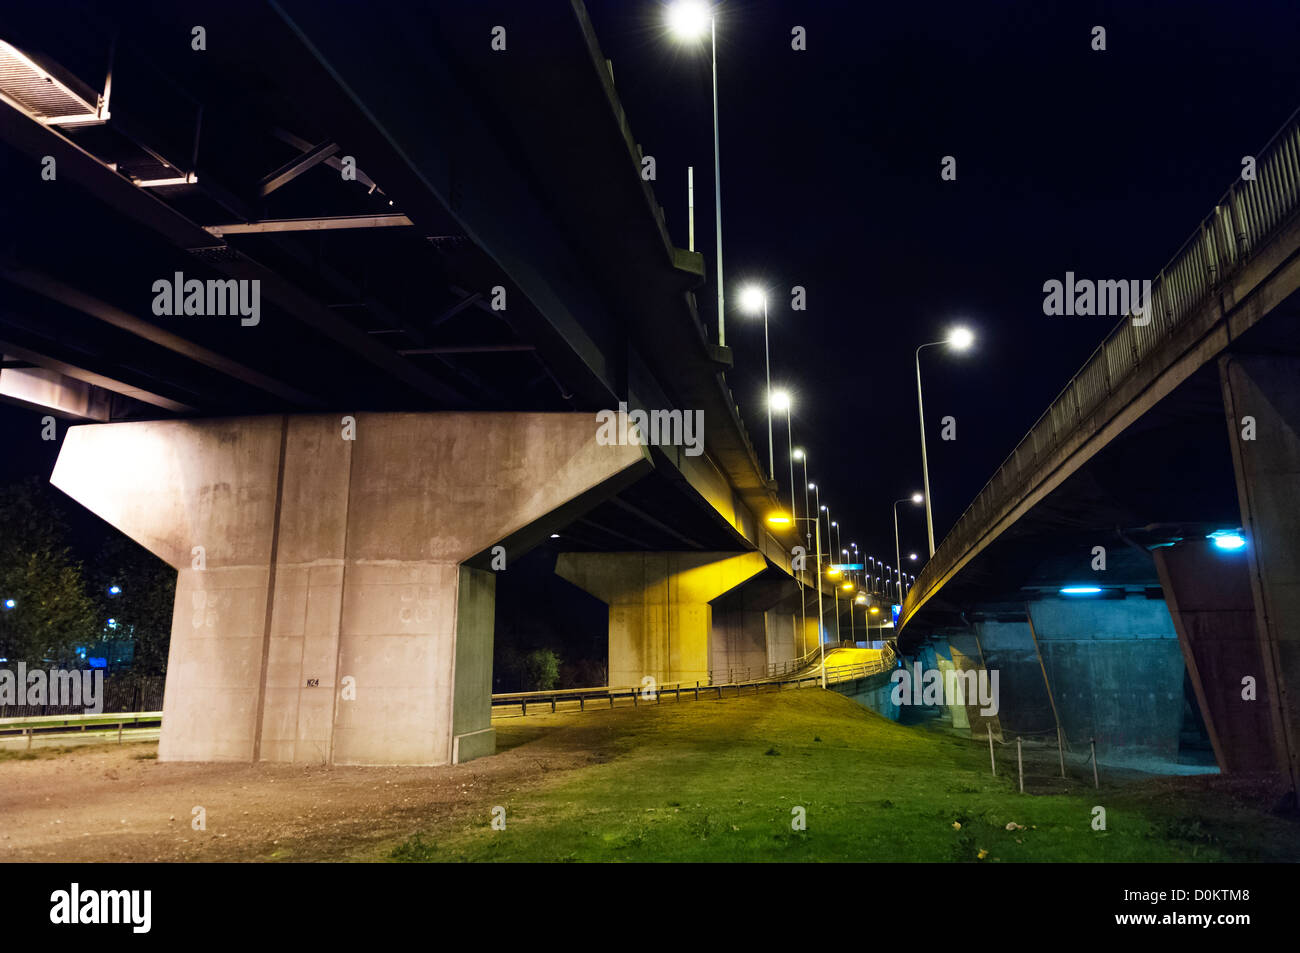 Looking up at a flyover in West Thurrock leading to the Dartford Crossing. - Stock Image